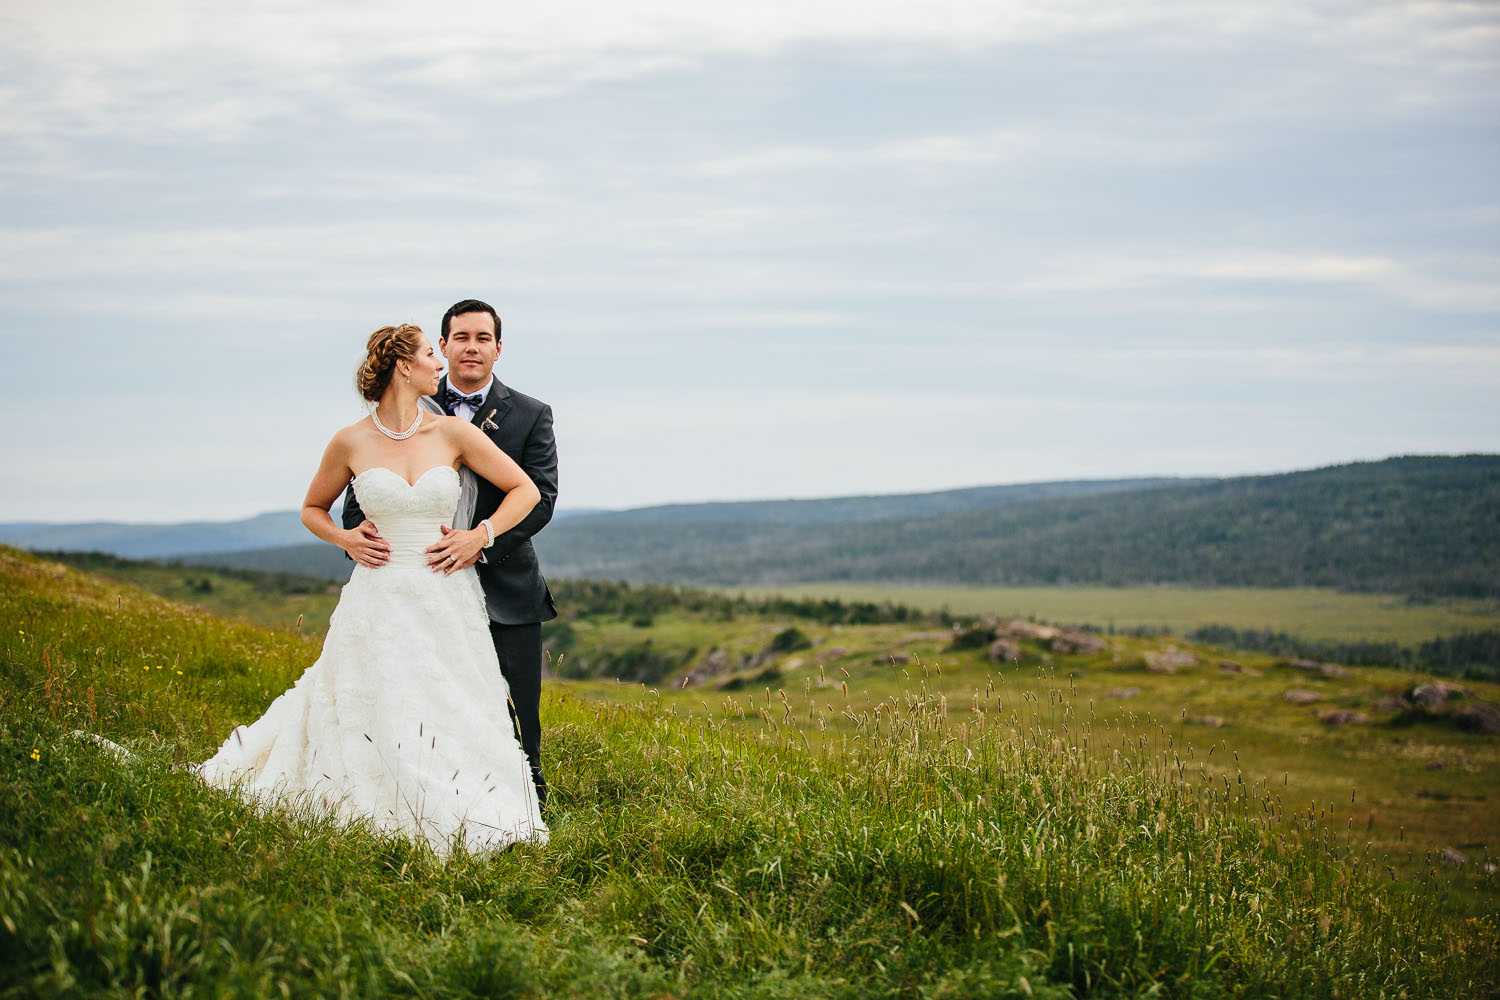 Thea-Chris-Cape-Spear-Wedding-Photography48